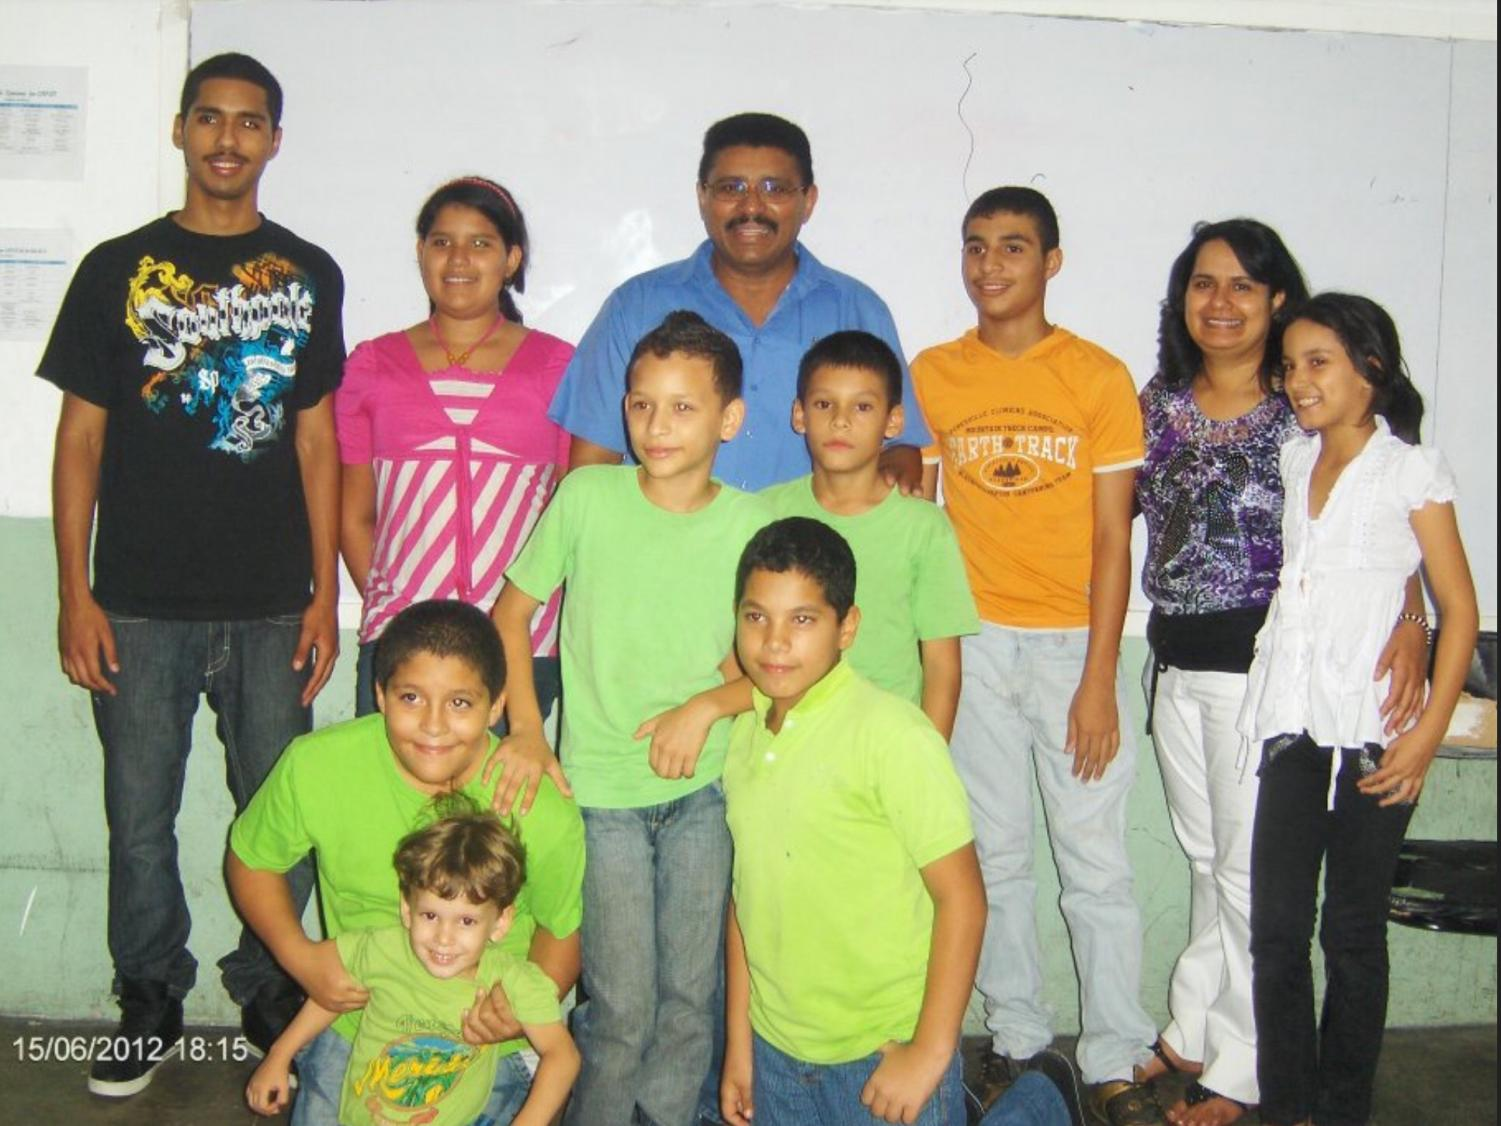 Senior Joangely Hernandez and her family spend time together for the first time in three years in Venezuela. In 2012 the Hernandez family was granted one week to go back to Venezuela because of a family emergency.